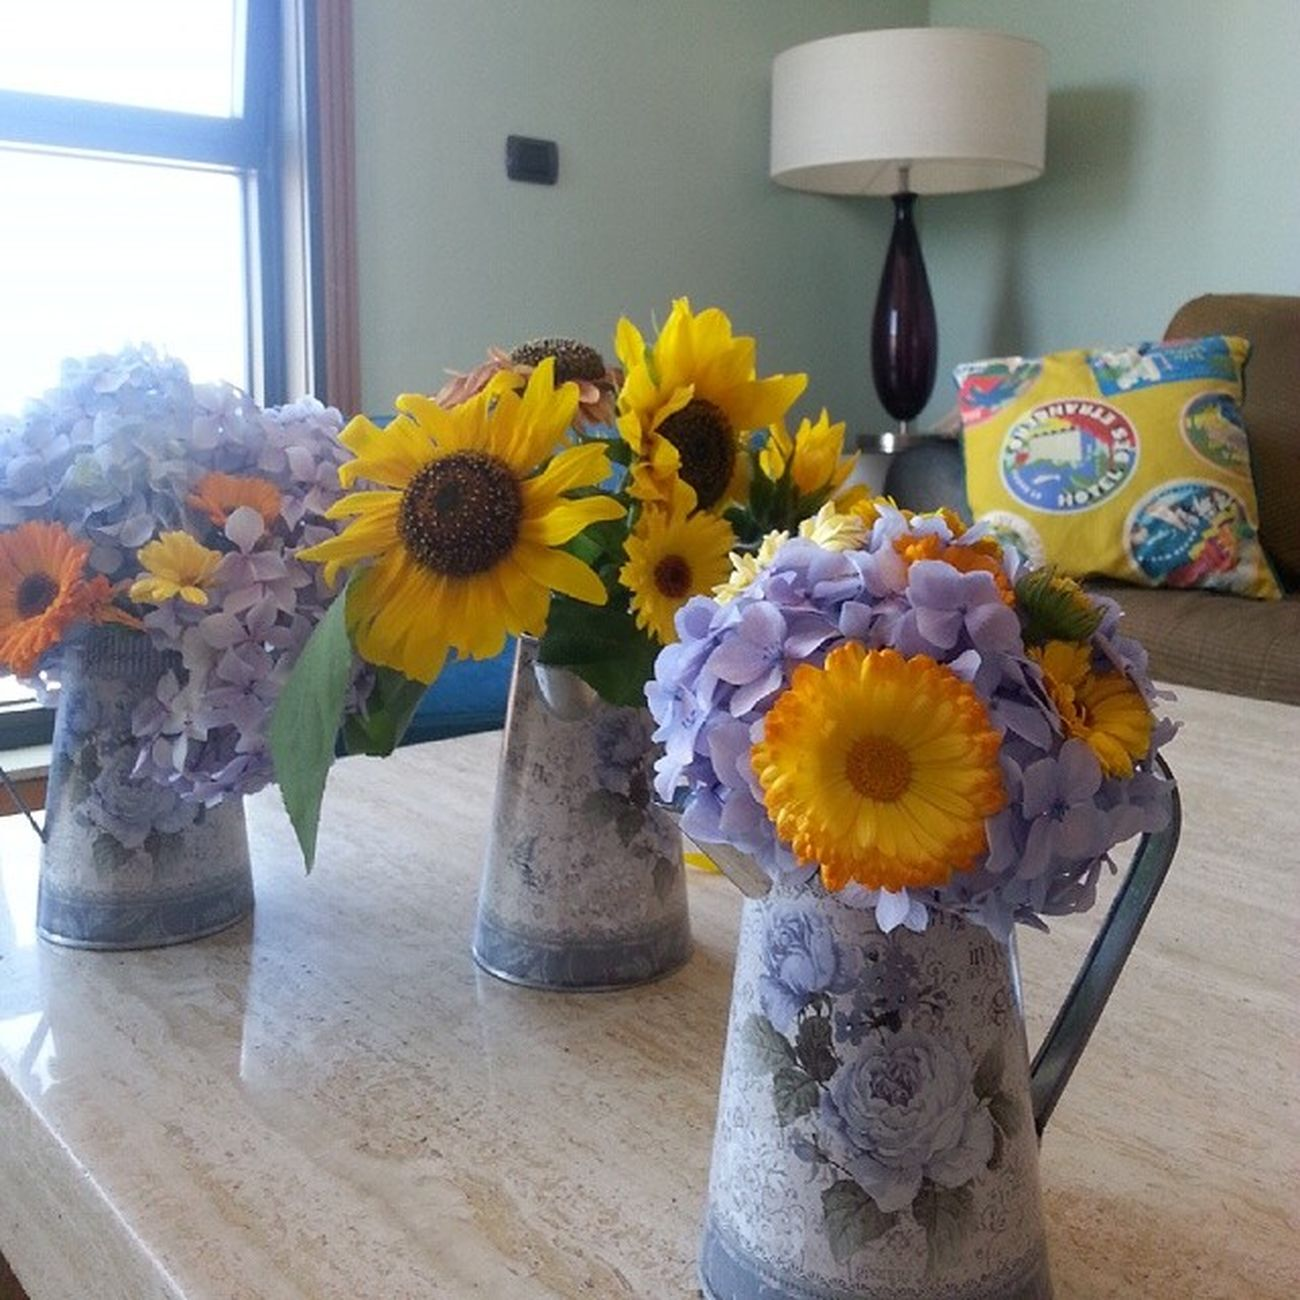 Home decoration this week. Flores Vigo Déco Cosy Lifestyle Decoration Flowers Jar Britishgarden Jarra Sunflowers Hydrangea Calendula Blue Yellow Orange Happiness